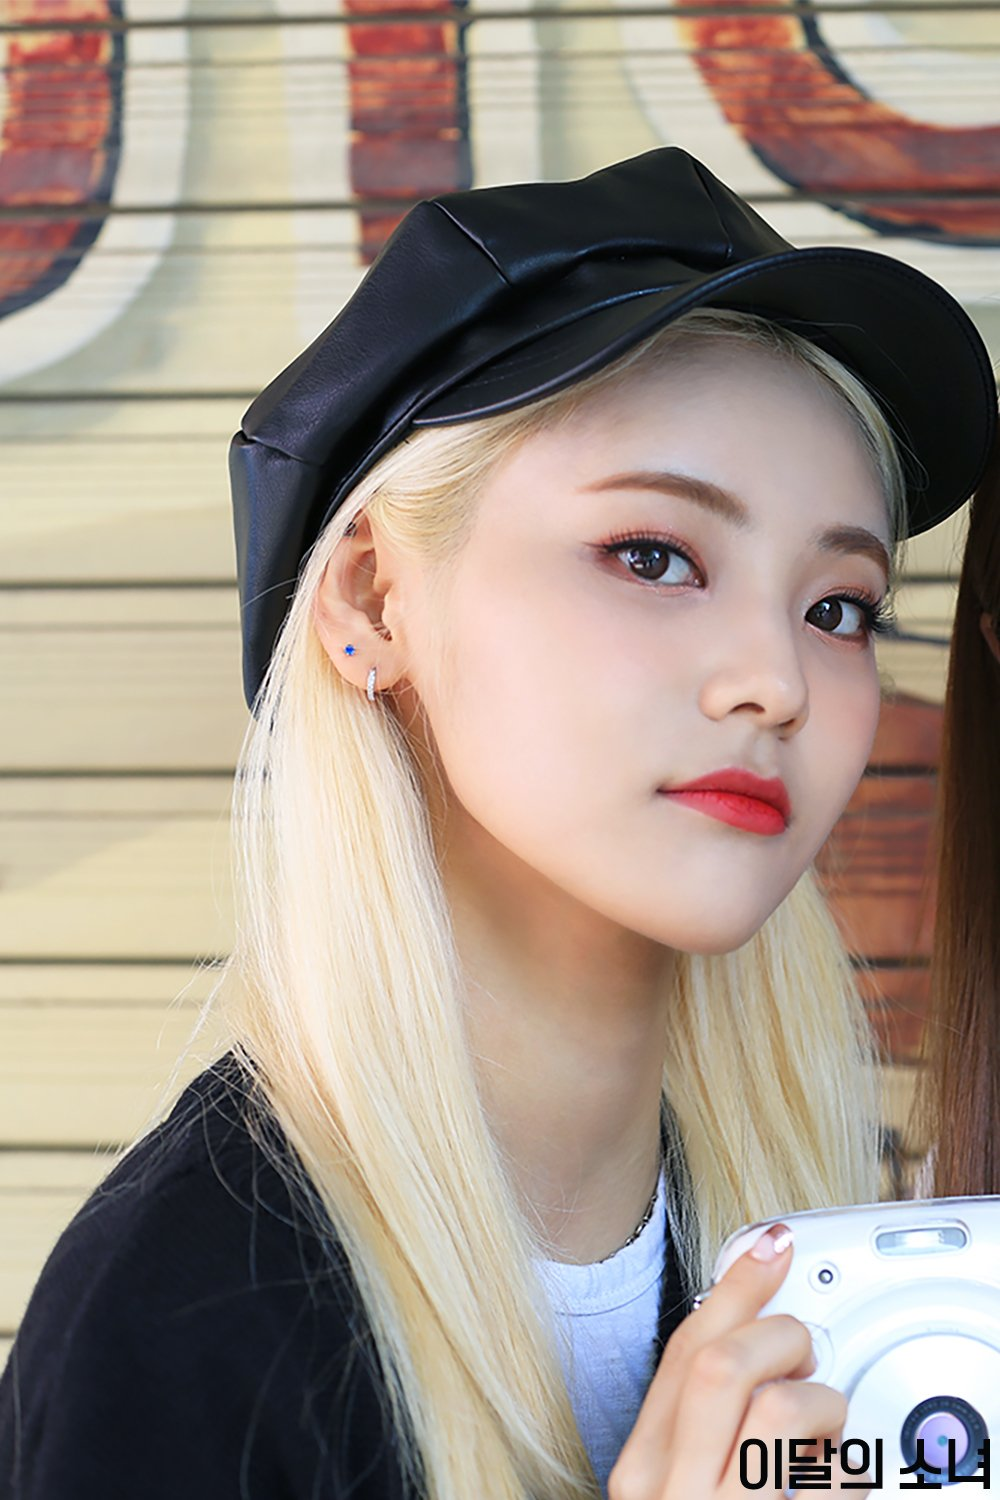 jung jinsoul  looΠΔ  page 2 of 77  asiachan kpop image